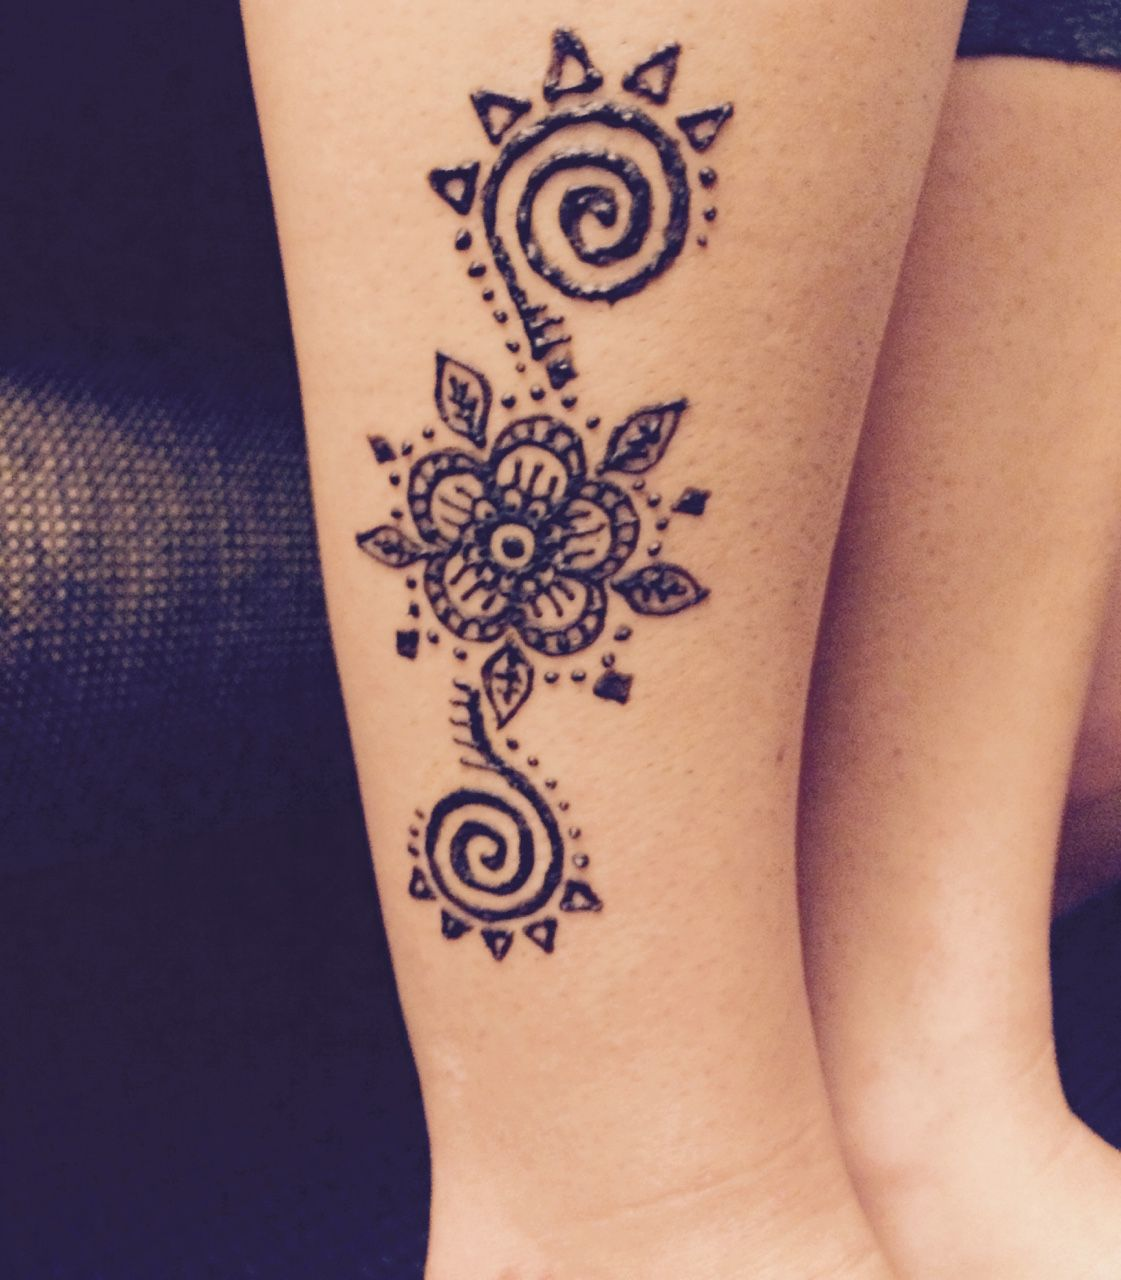 Simple Sun Henna Tattoo Designs: Images For > Simple Henna Tattoo Designs Sun